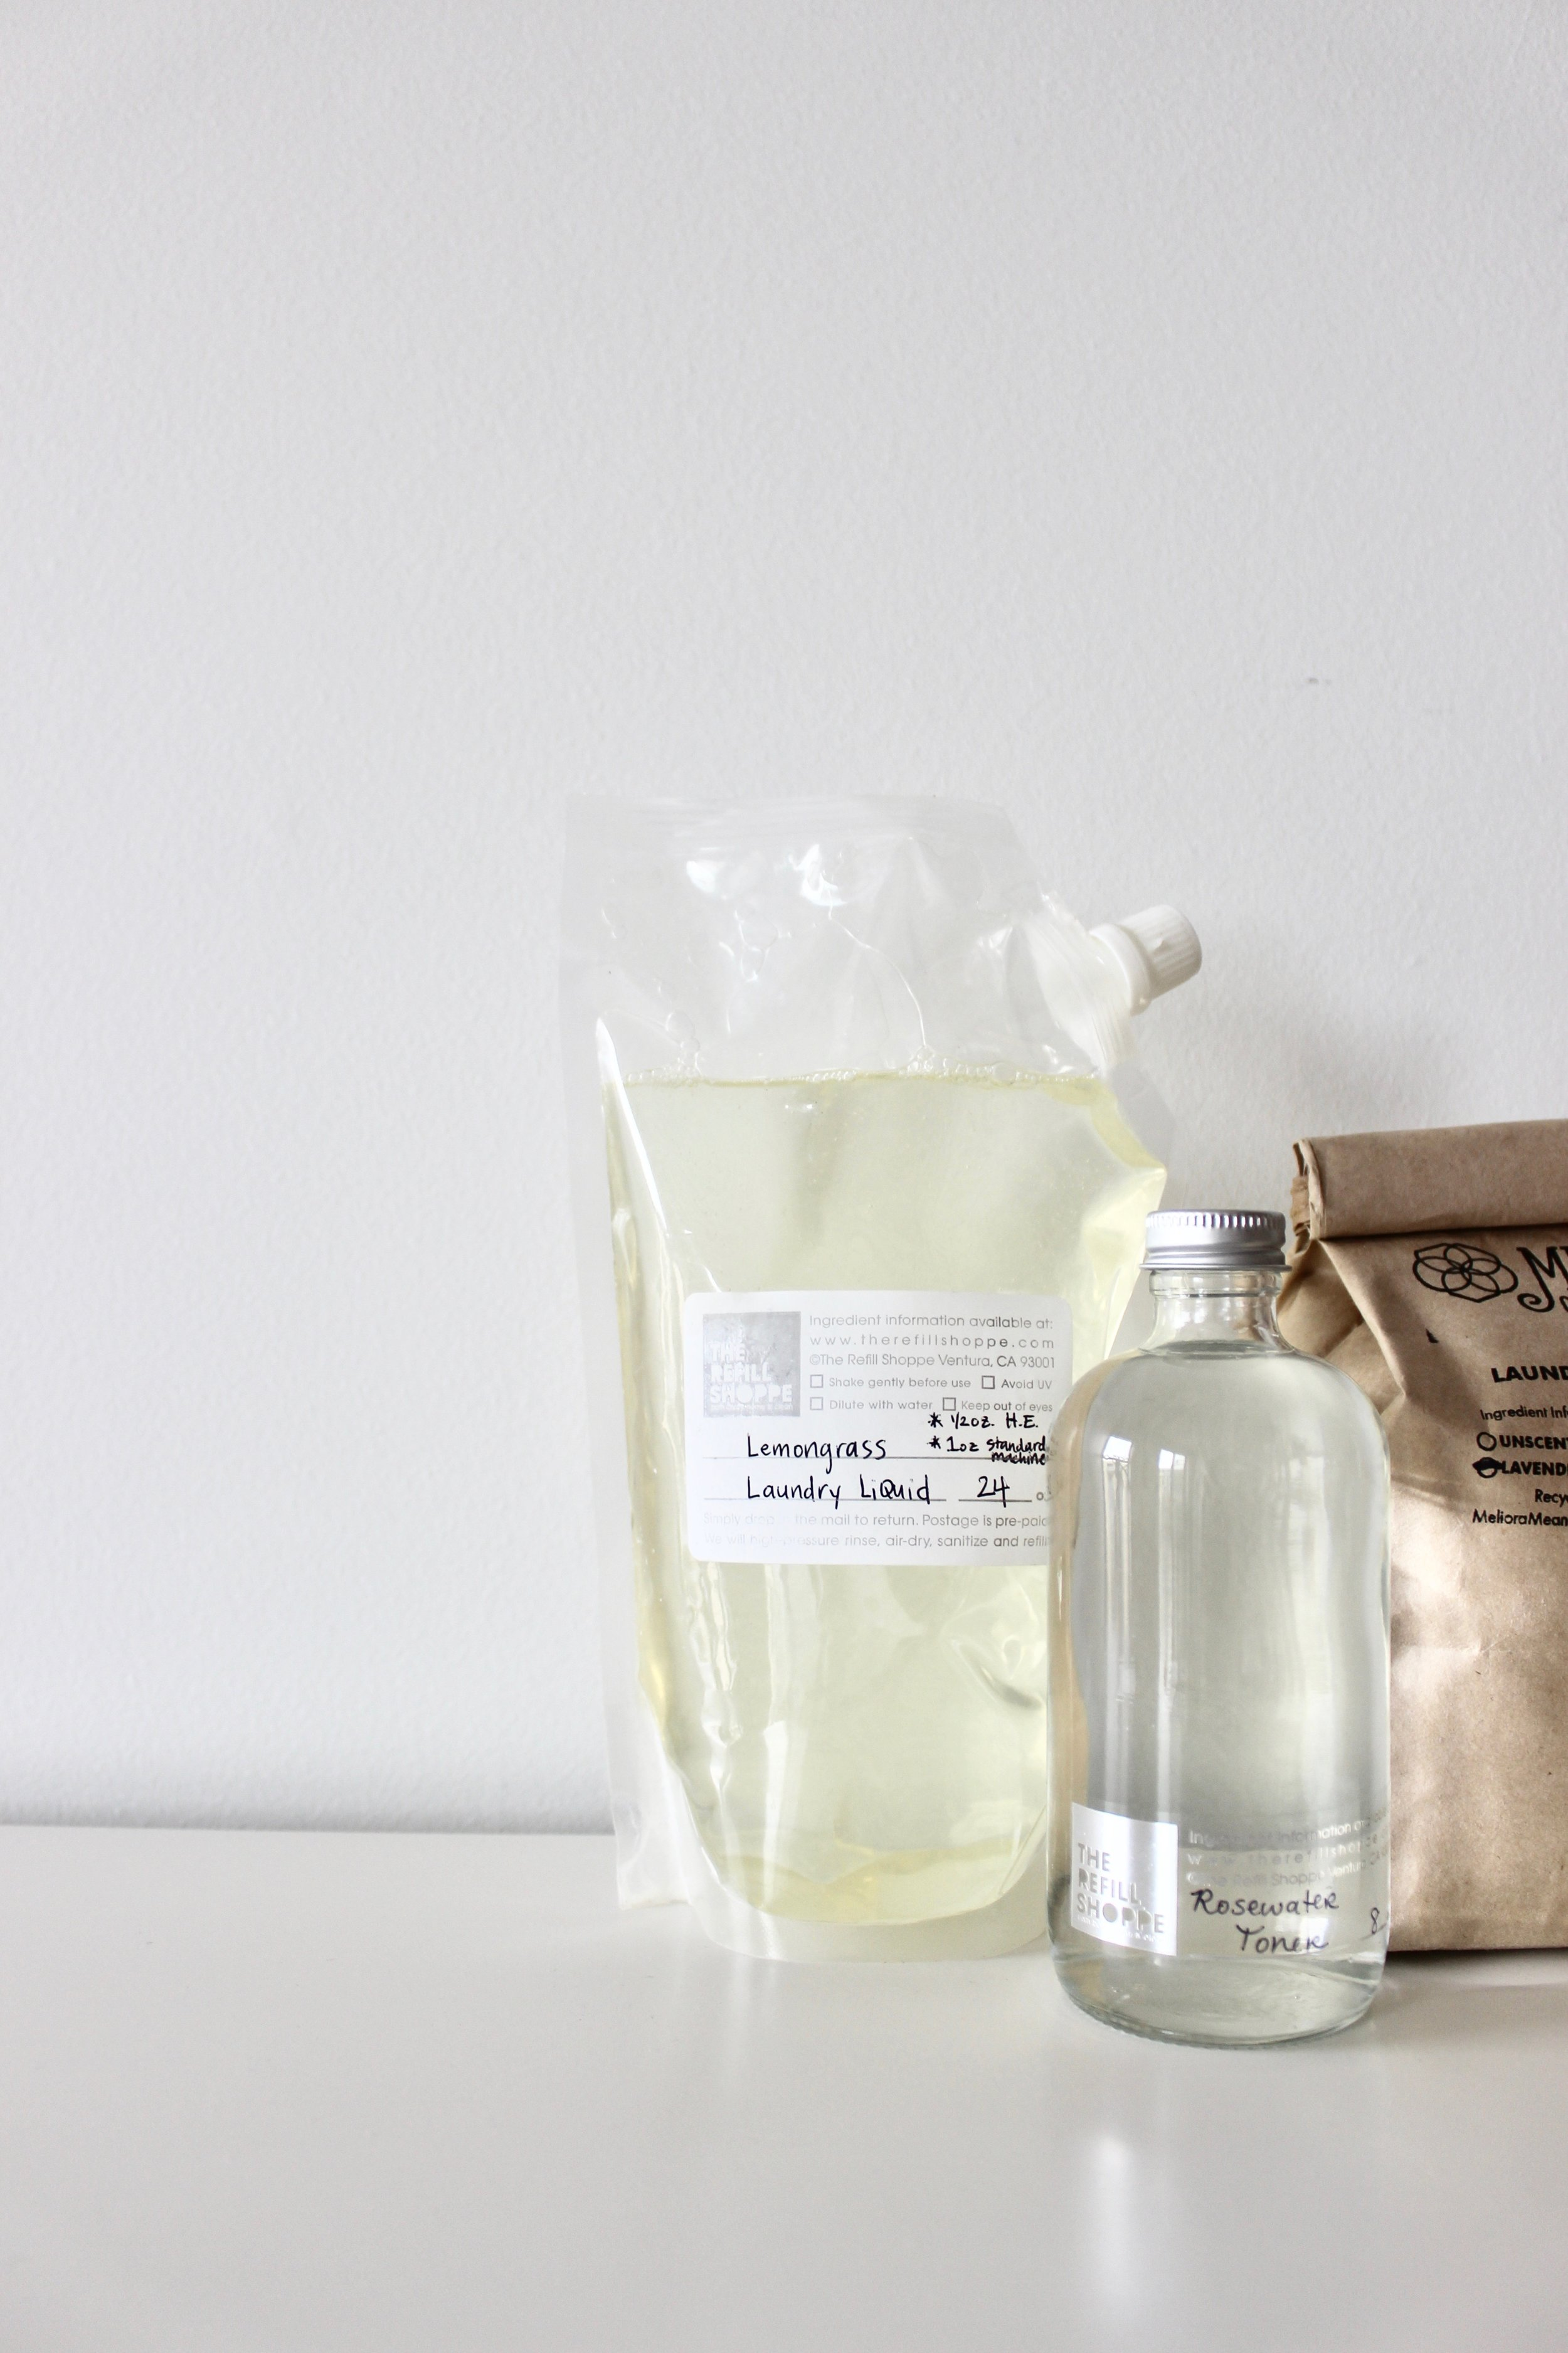 Online bulk directory for purchasing refillable, zero waste beauty and cleaning products | Litterless